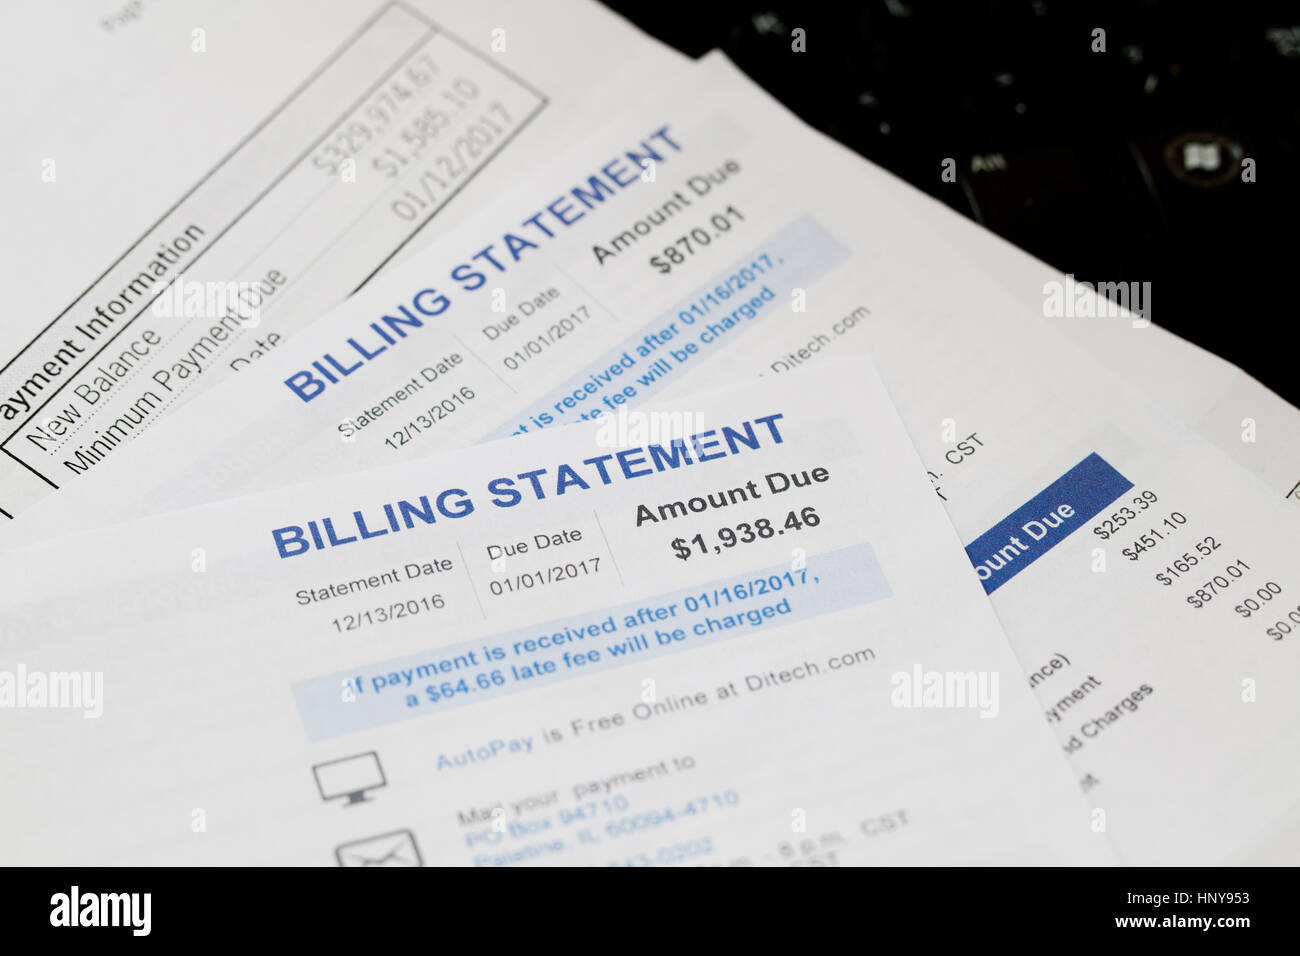 Mortgage billing statements - USA - Stock Image